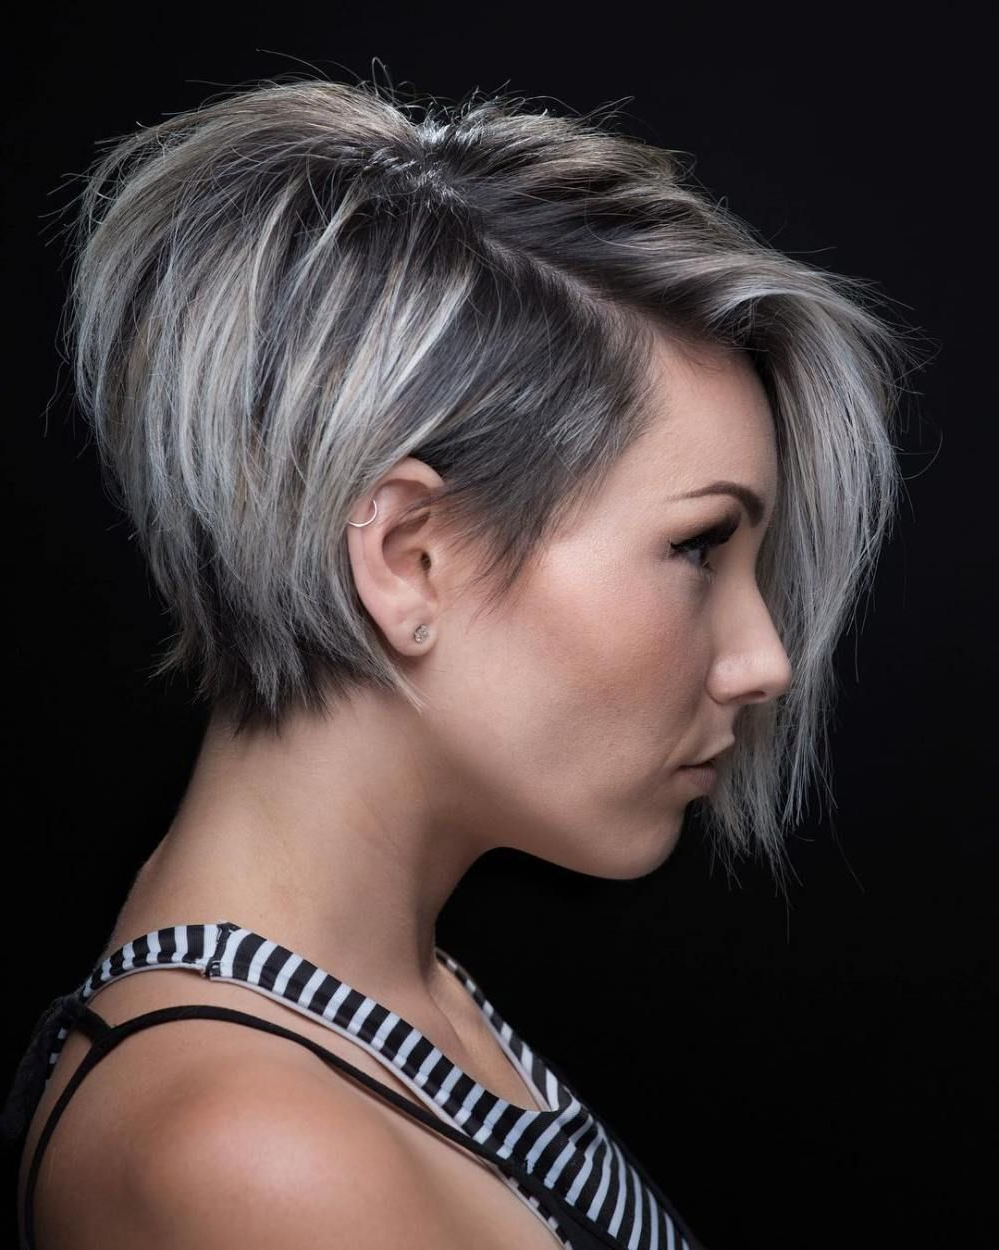 100 Mind Blowing Short Hairstyles For Fine Hair | Pixie Bob, Long For Highlighted Pixie Bob Hairstyles With Long Bangs (View 1 of 20)